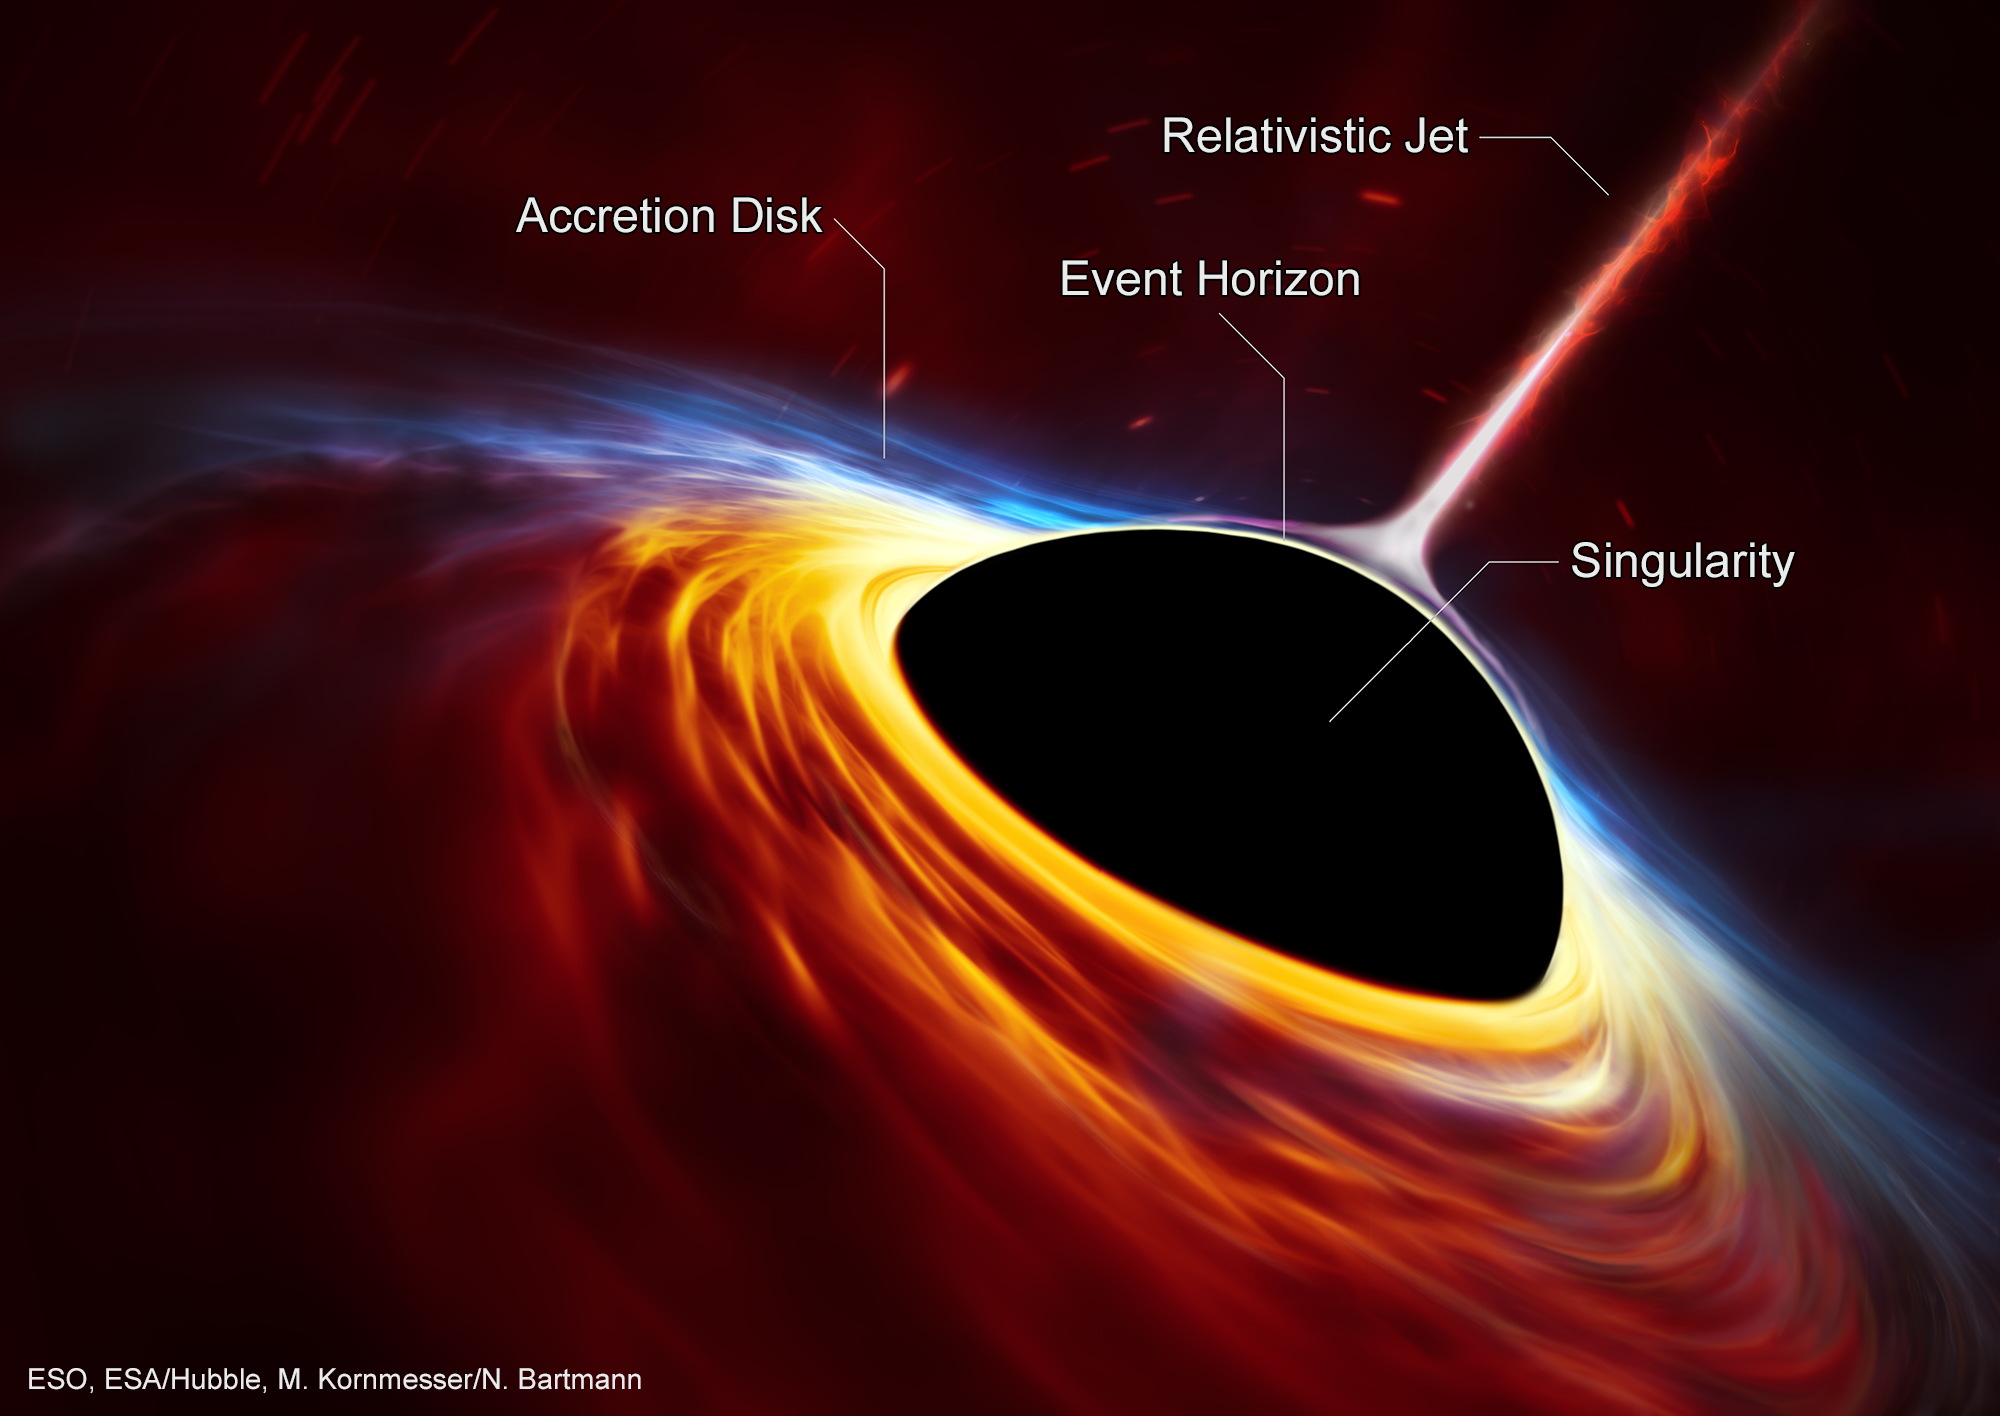 Labeled illustration of a black hole